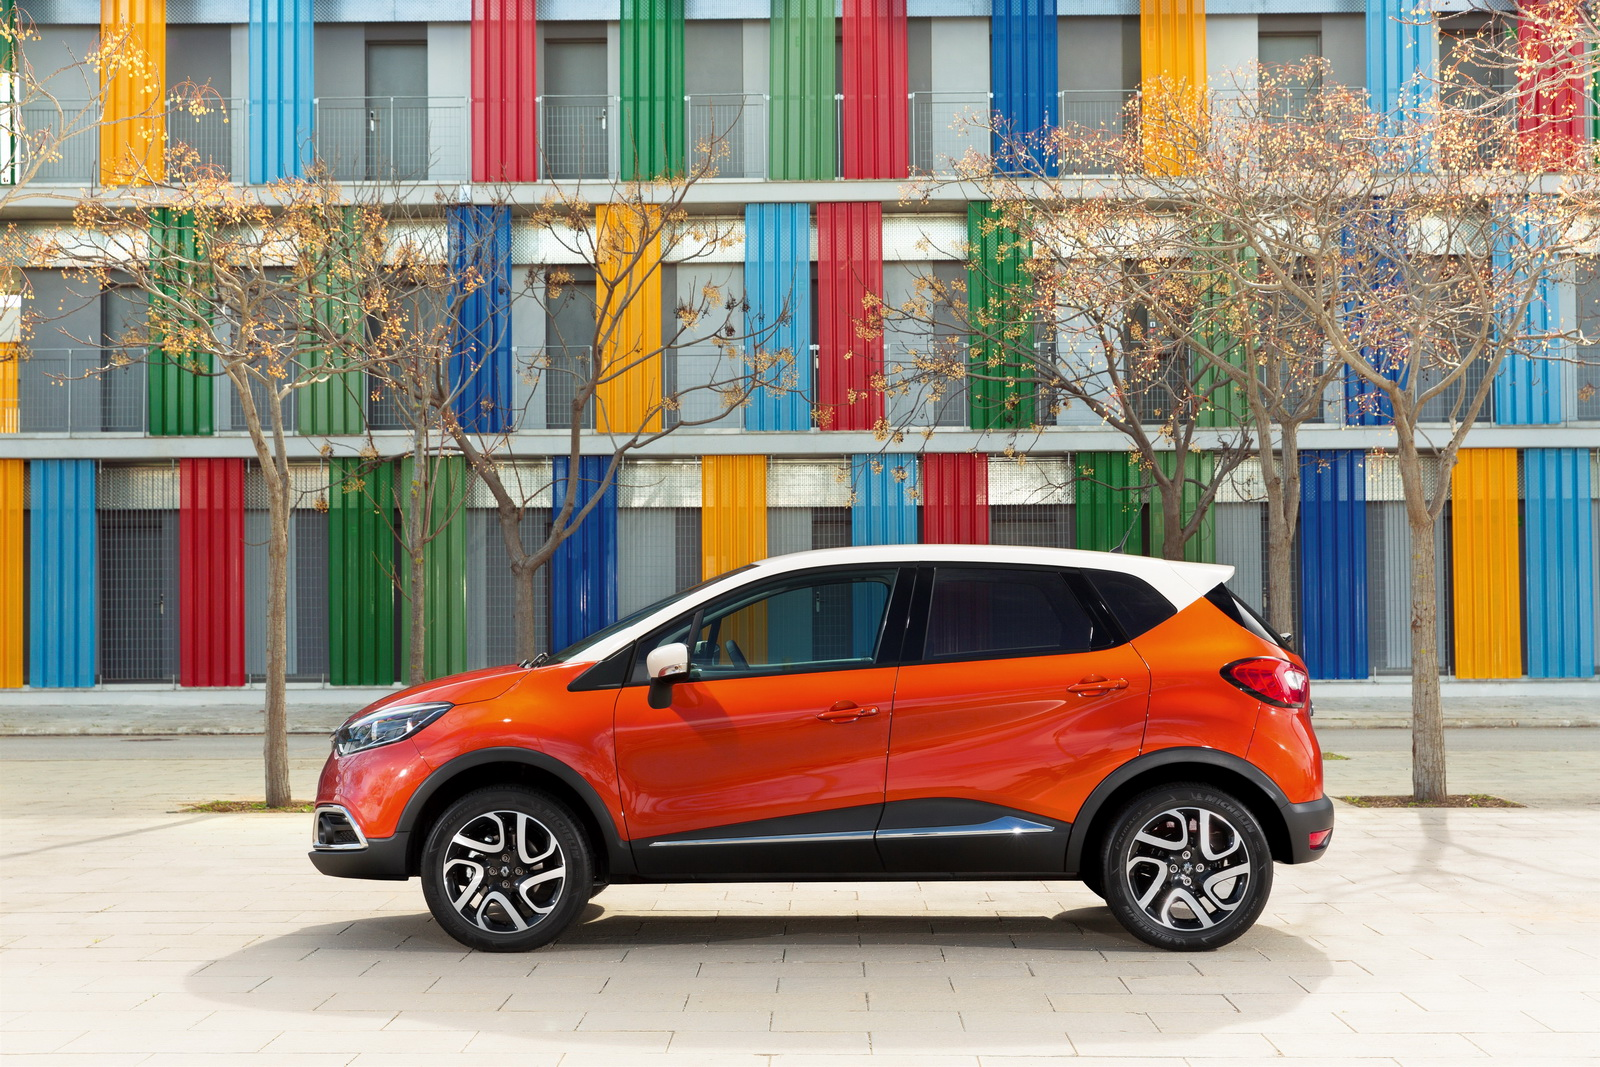 renault recalls captur and issues voluntary emissions system update for 700 000 cars. Black Bedroom Furniture Sets. Home Design Ideas